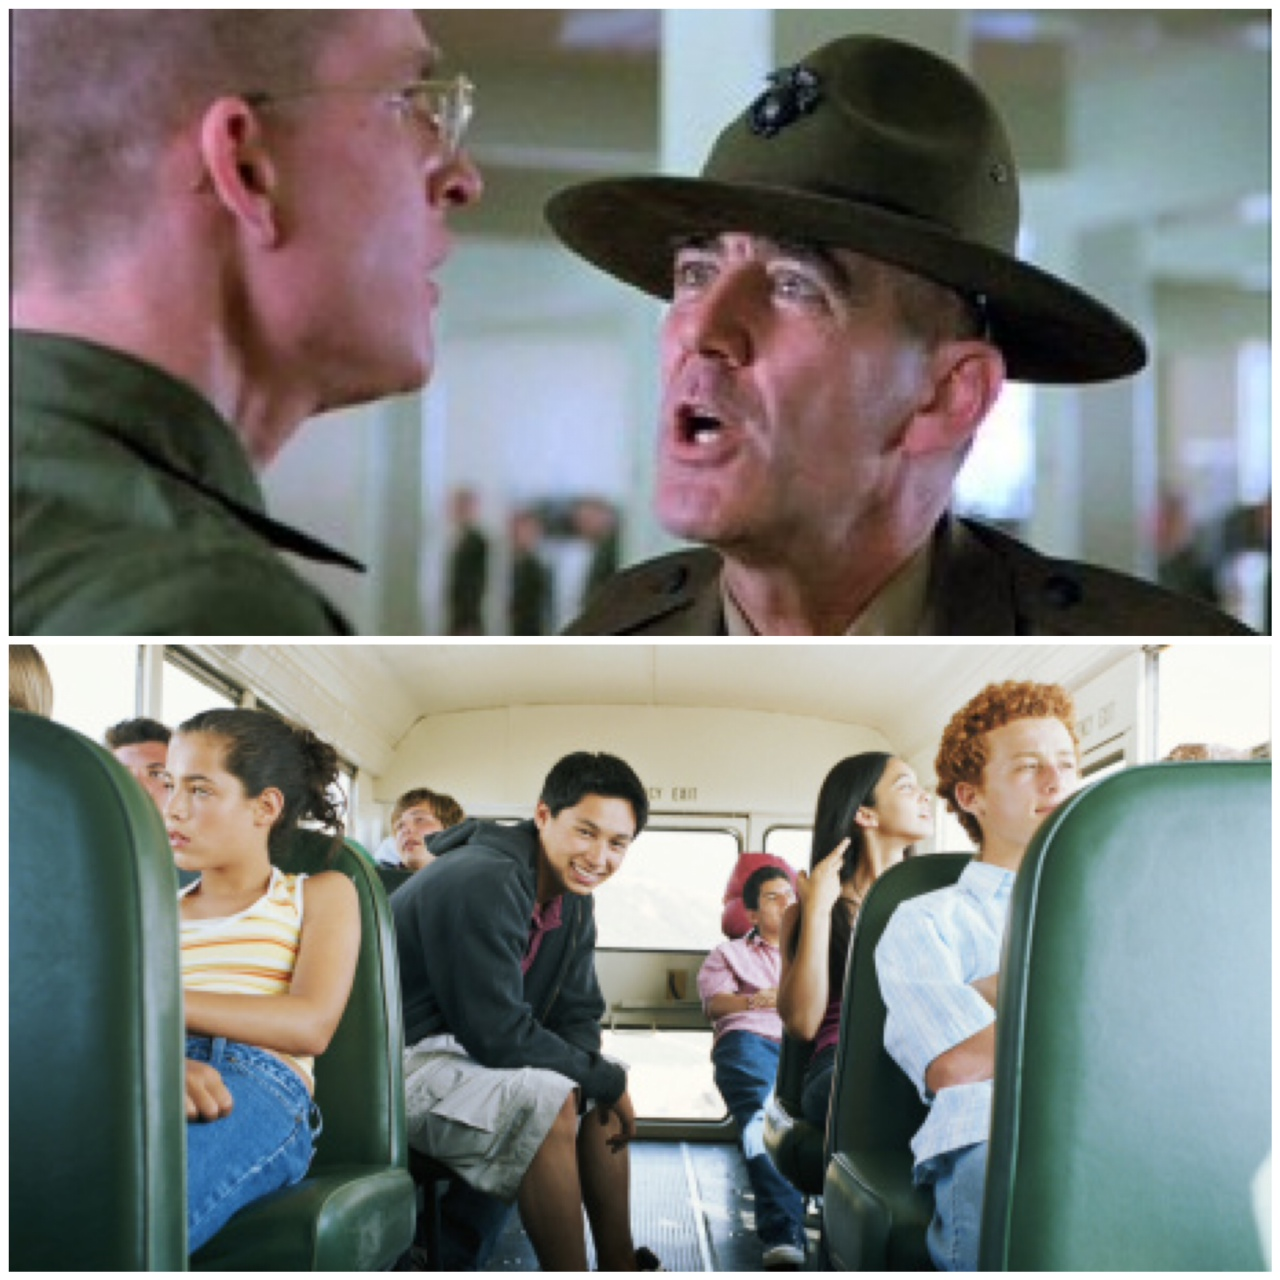 Kids on school bus are scarier than a drill sergeant